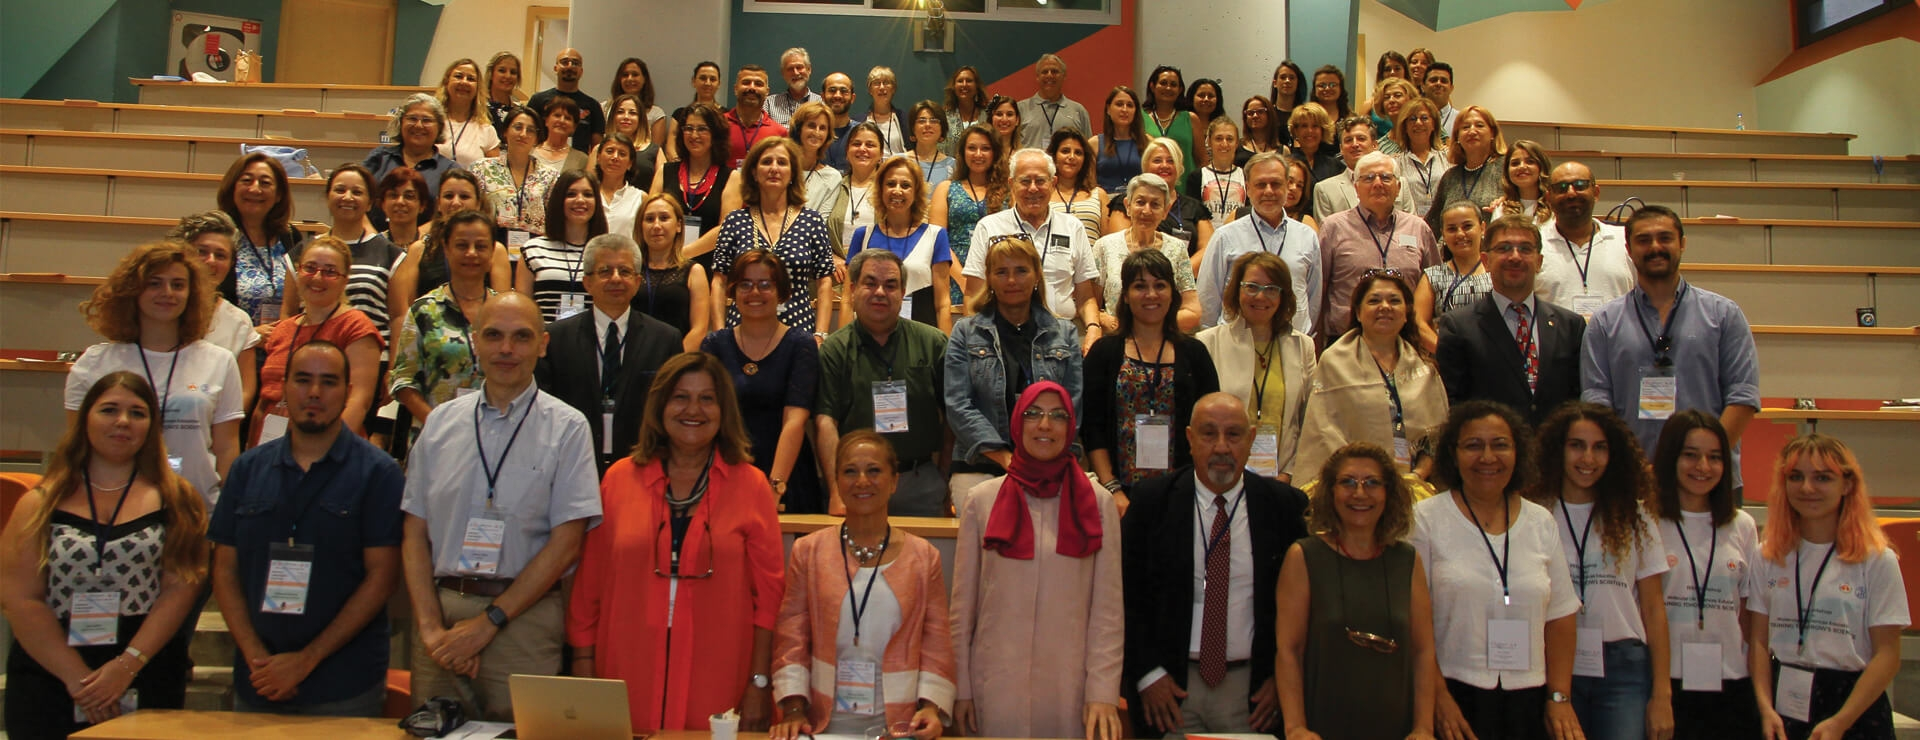 IUE ORGANIZED TWO IMPORTANT WORKSHOP IN SEPTEMBER WITH IUE GRADUATE SCHOOL OF HEALTH SCIENCES (SABE) FACULTY OF MEDICINE COOPERATION